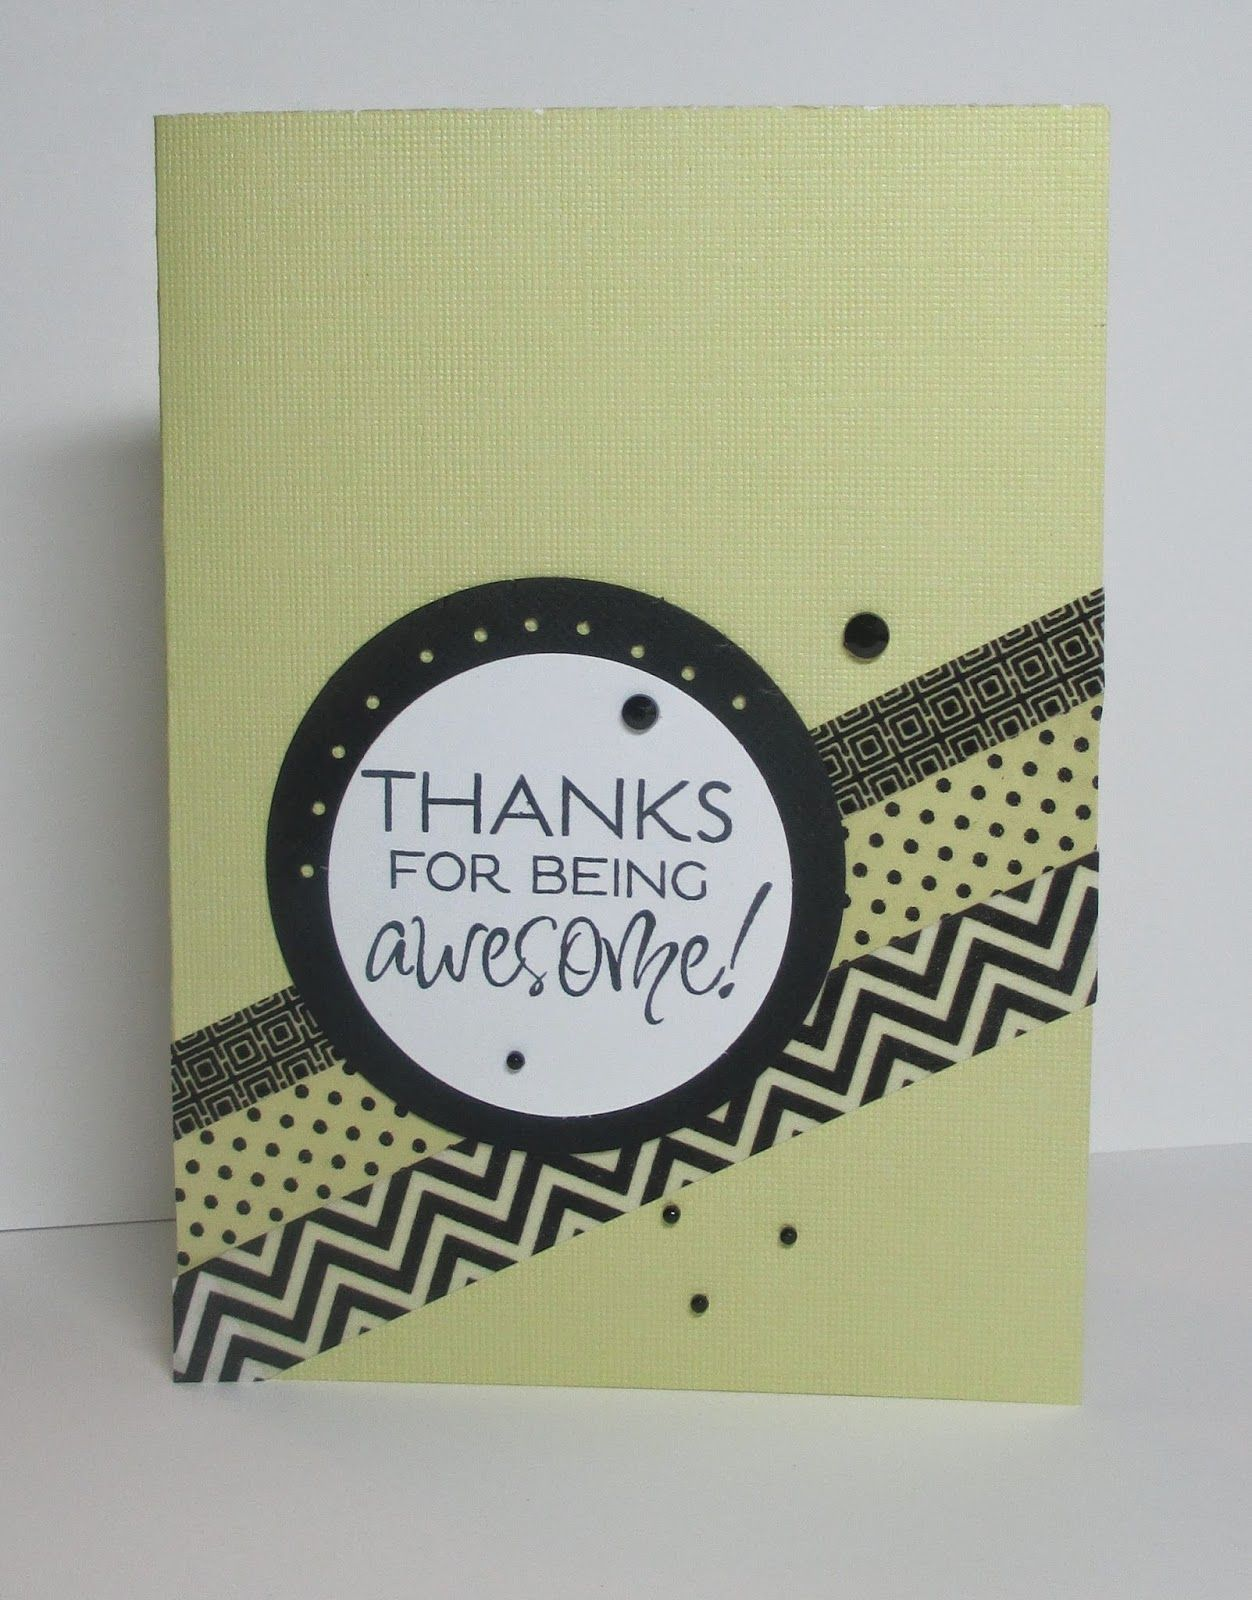 Stampinu mim awesome card inspiration pinterest cards